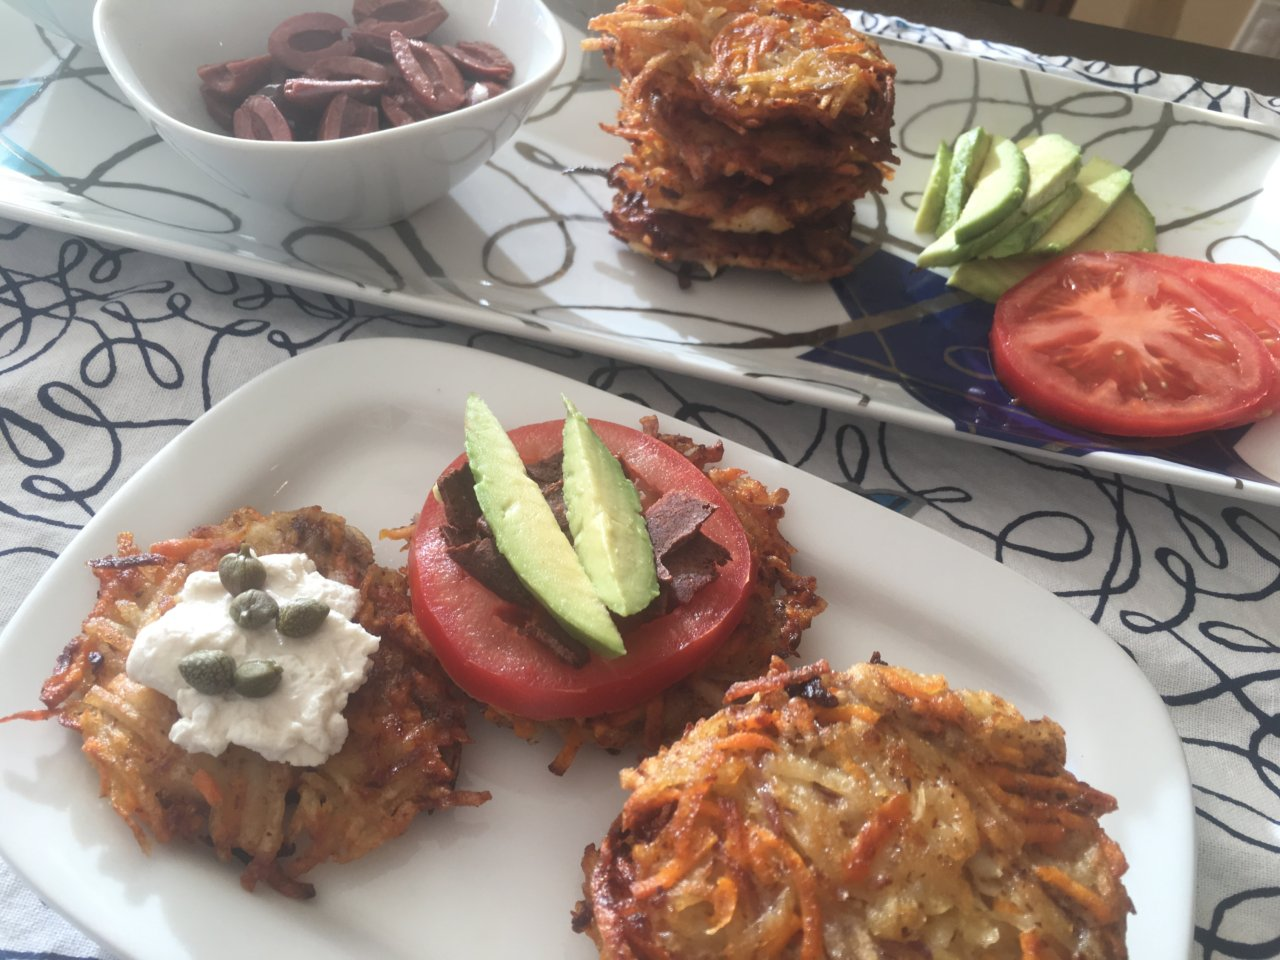 Egg-Free-Sweet-Potato-Latkes-2-1280x960.jpg